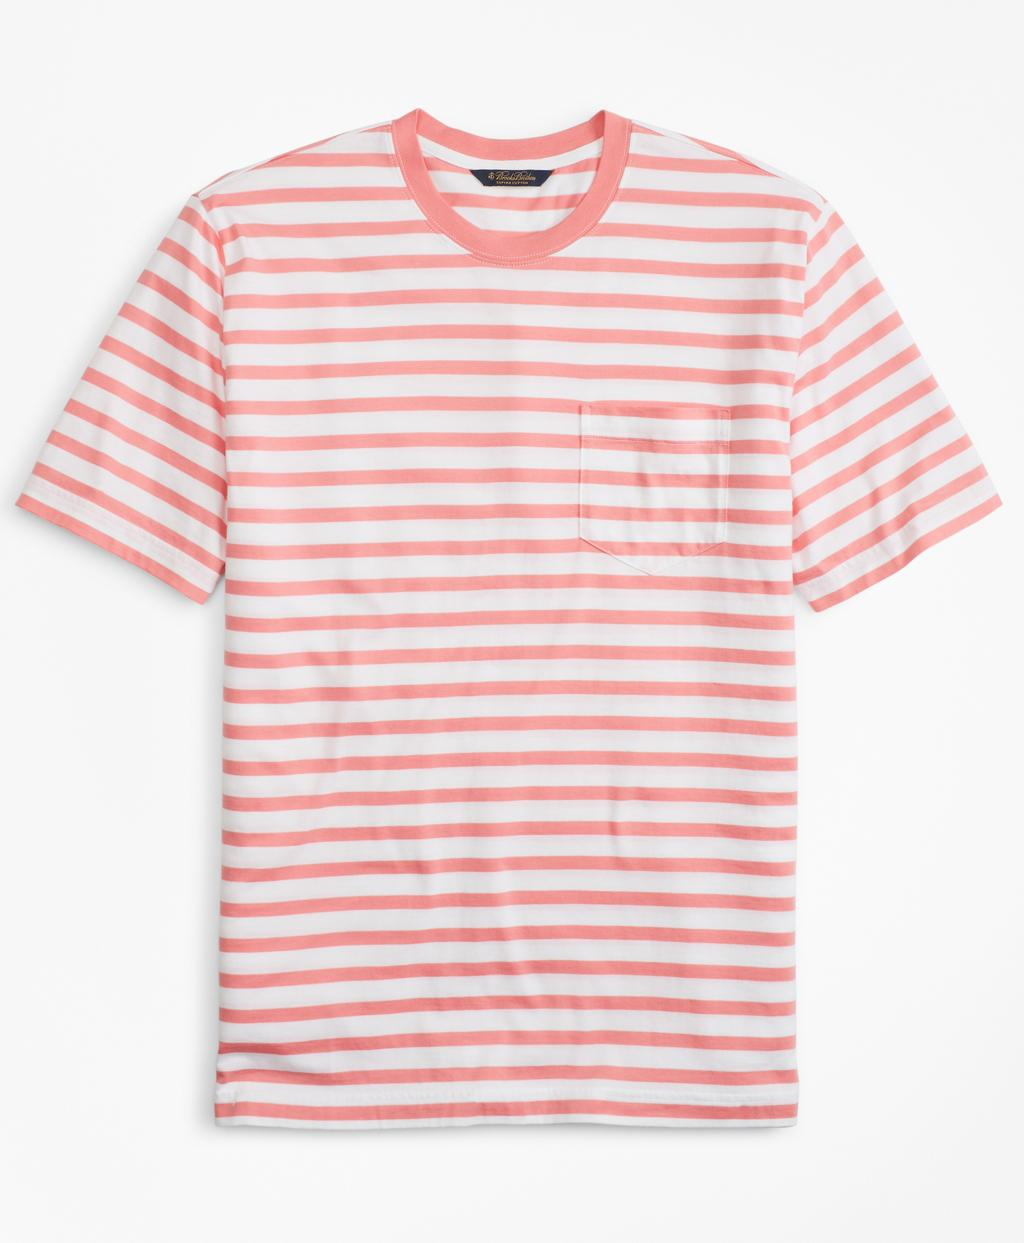 4e7903b8b67 Lyst - Brooks Brothers Supima® Cotton Stripe T-shirt in Pink for Men